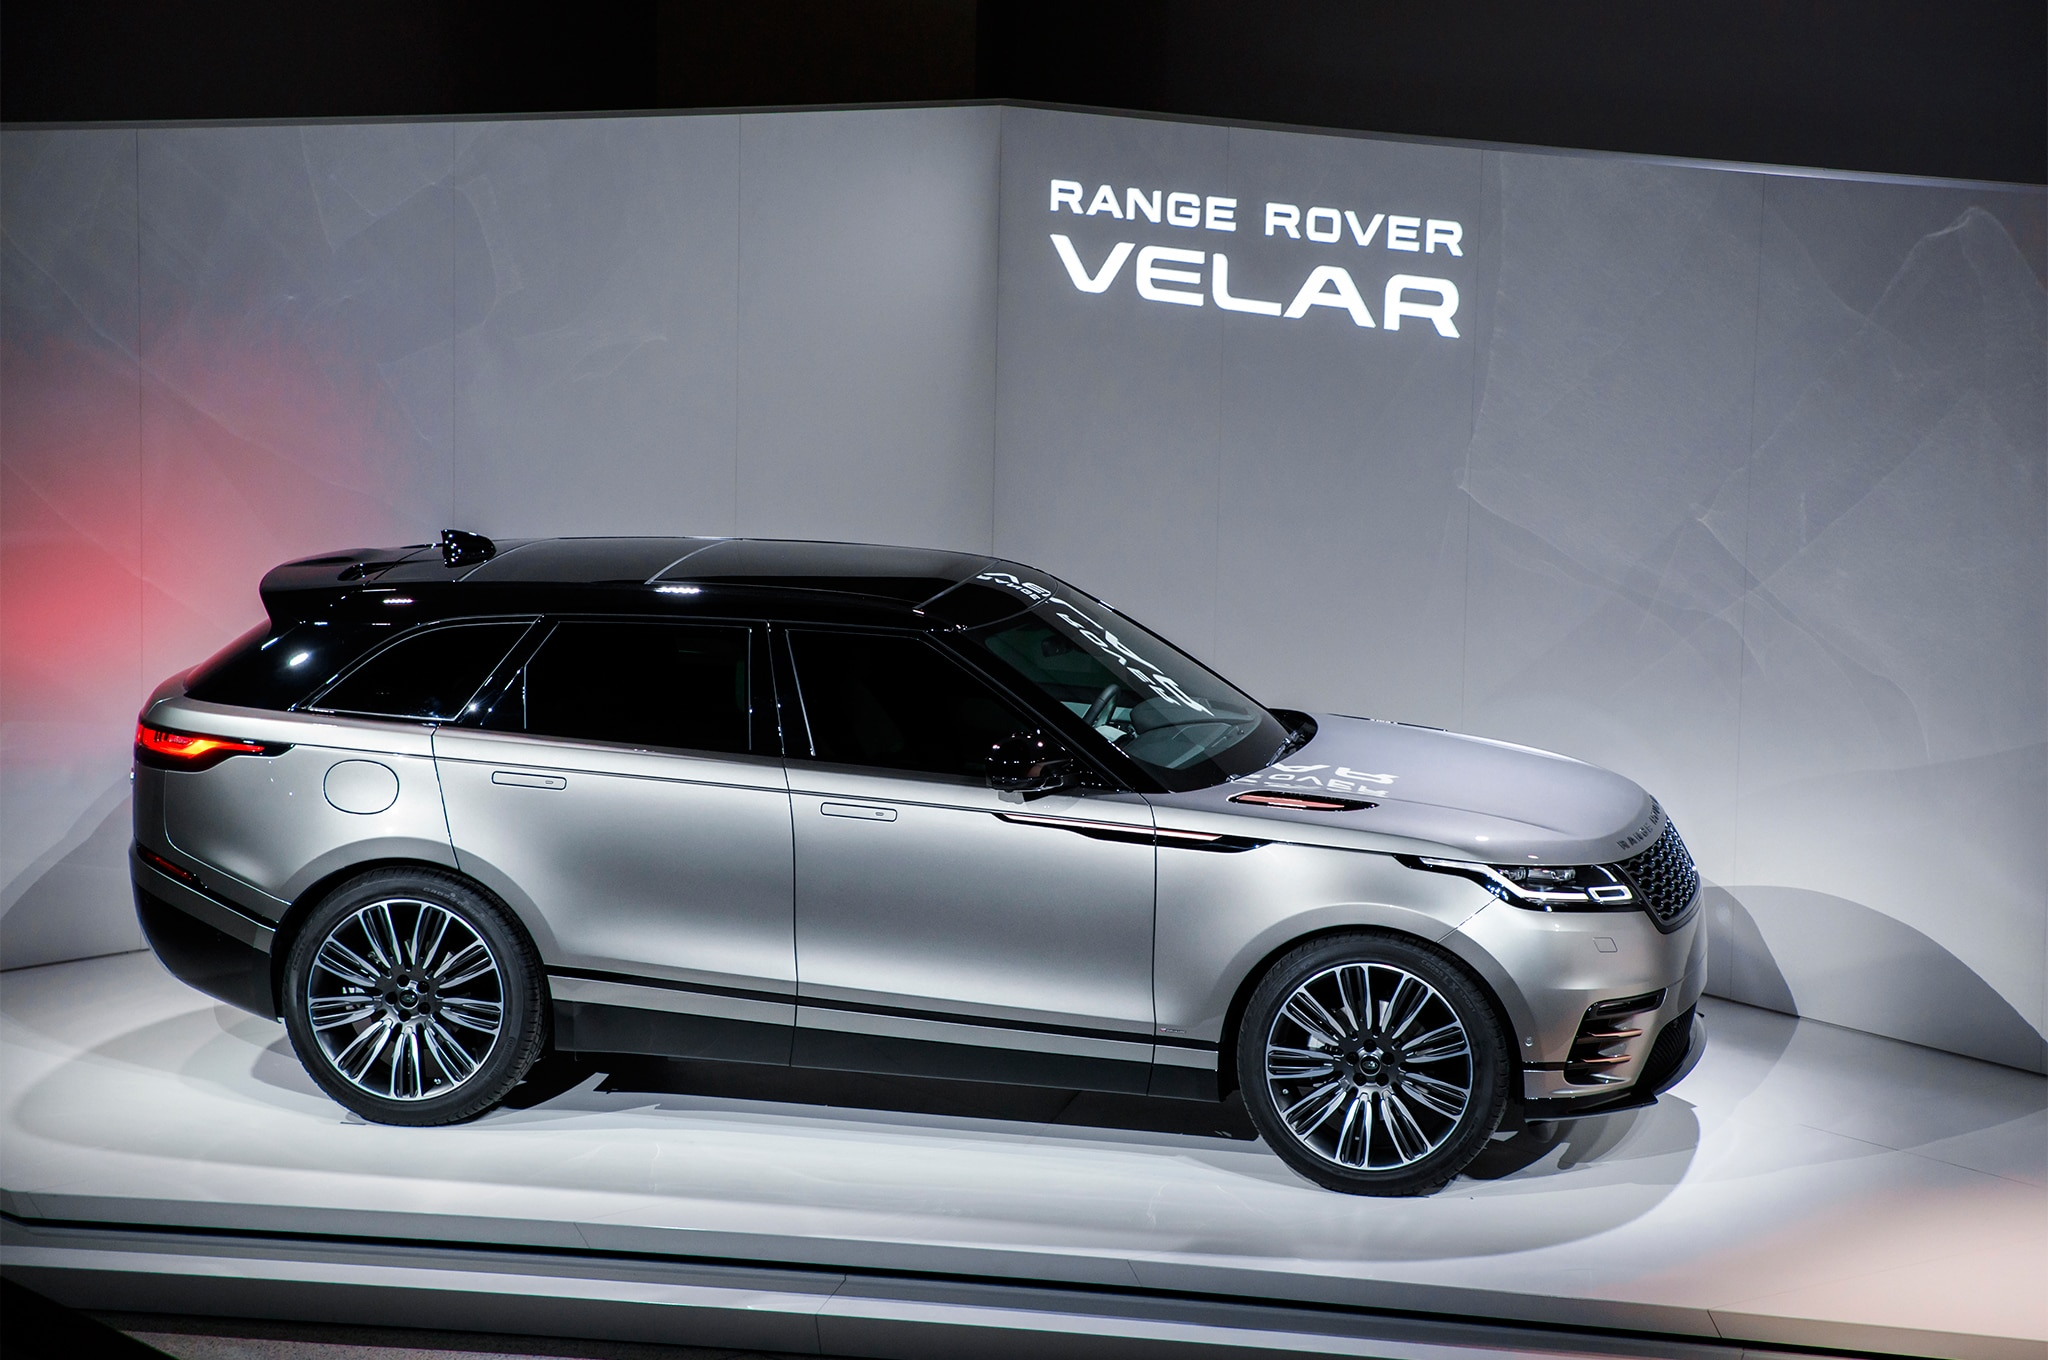 auto velar i hope touchscreens miami land you rover like really preview landrover lease roadshow range